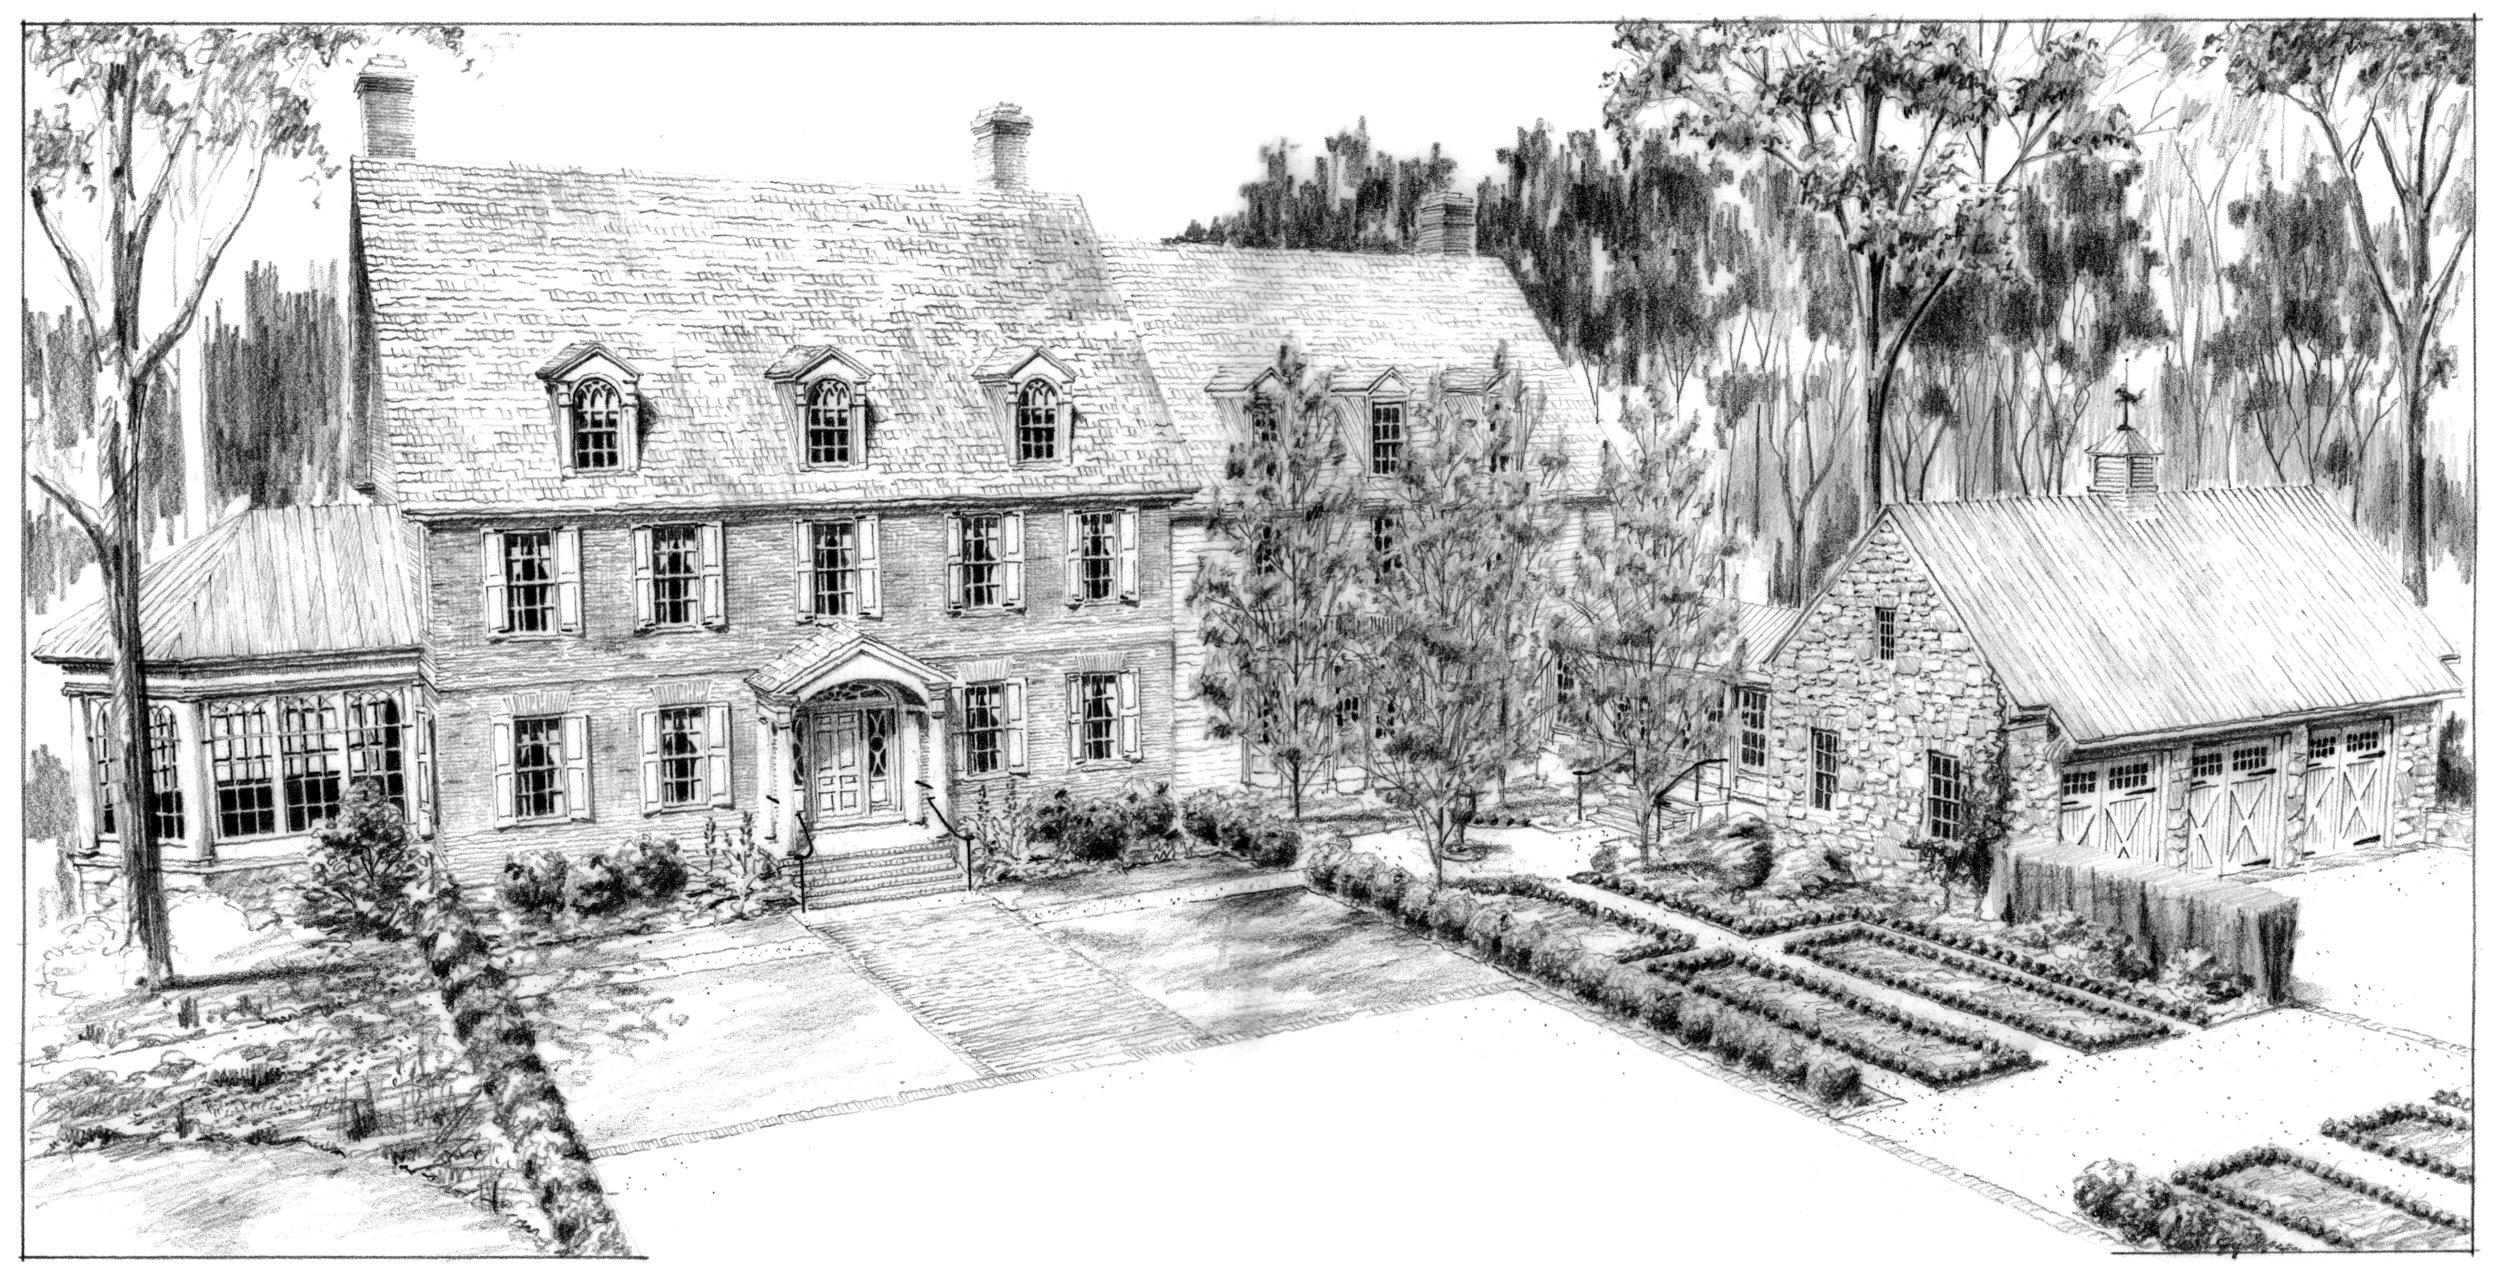 Drawing by Devin S. Kimmel, AIA, ASLA